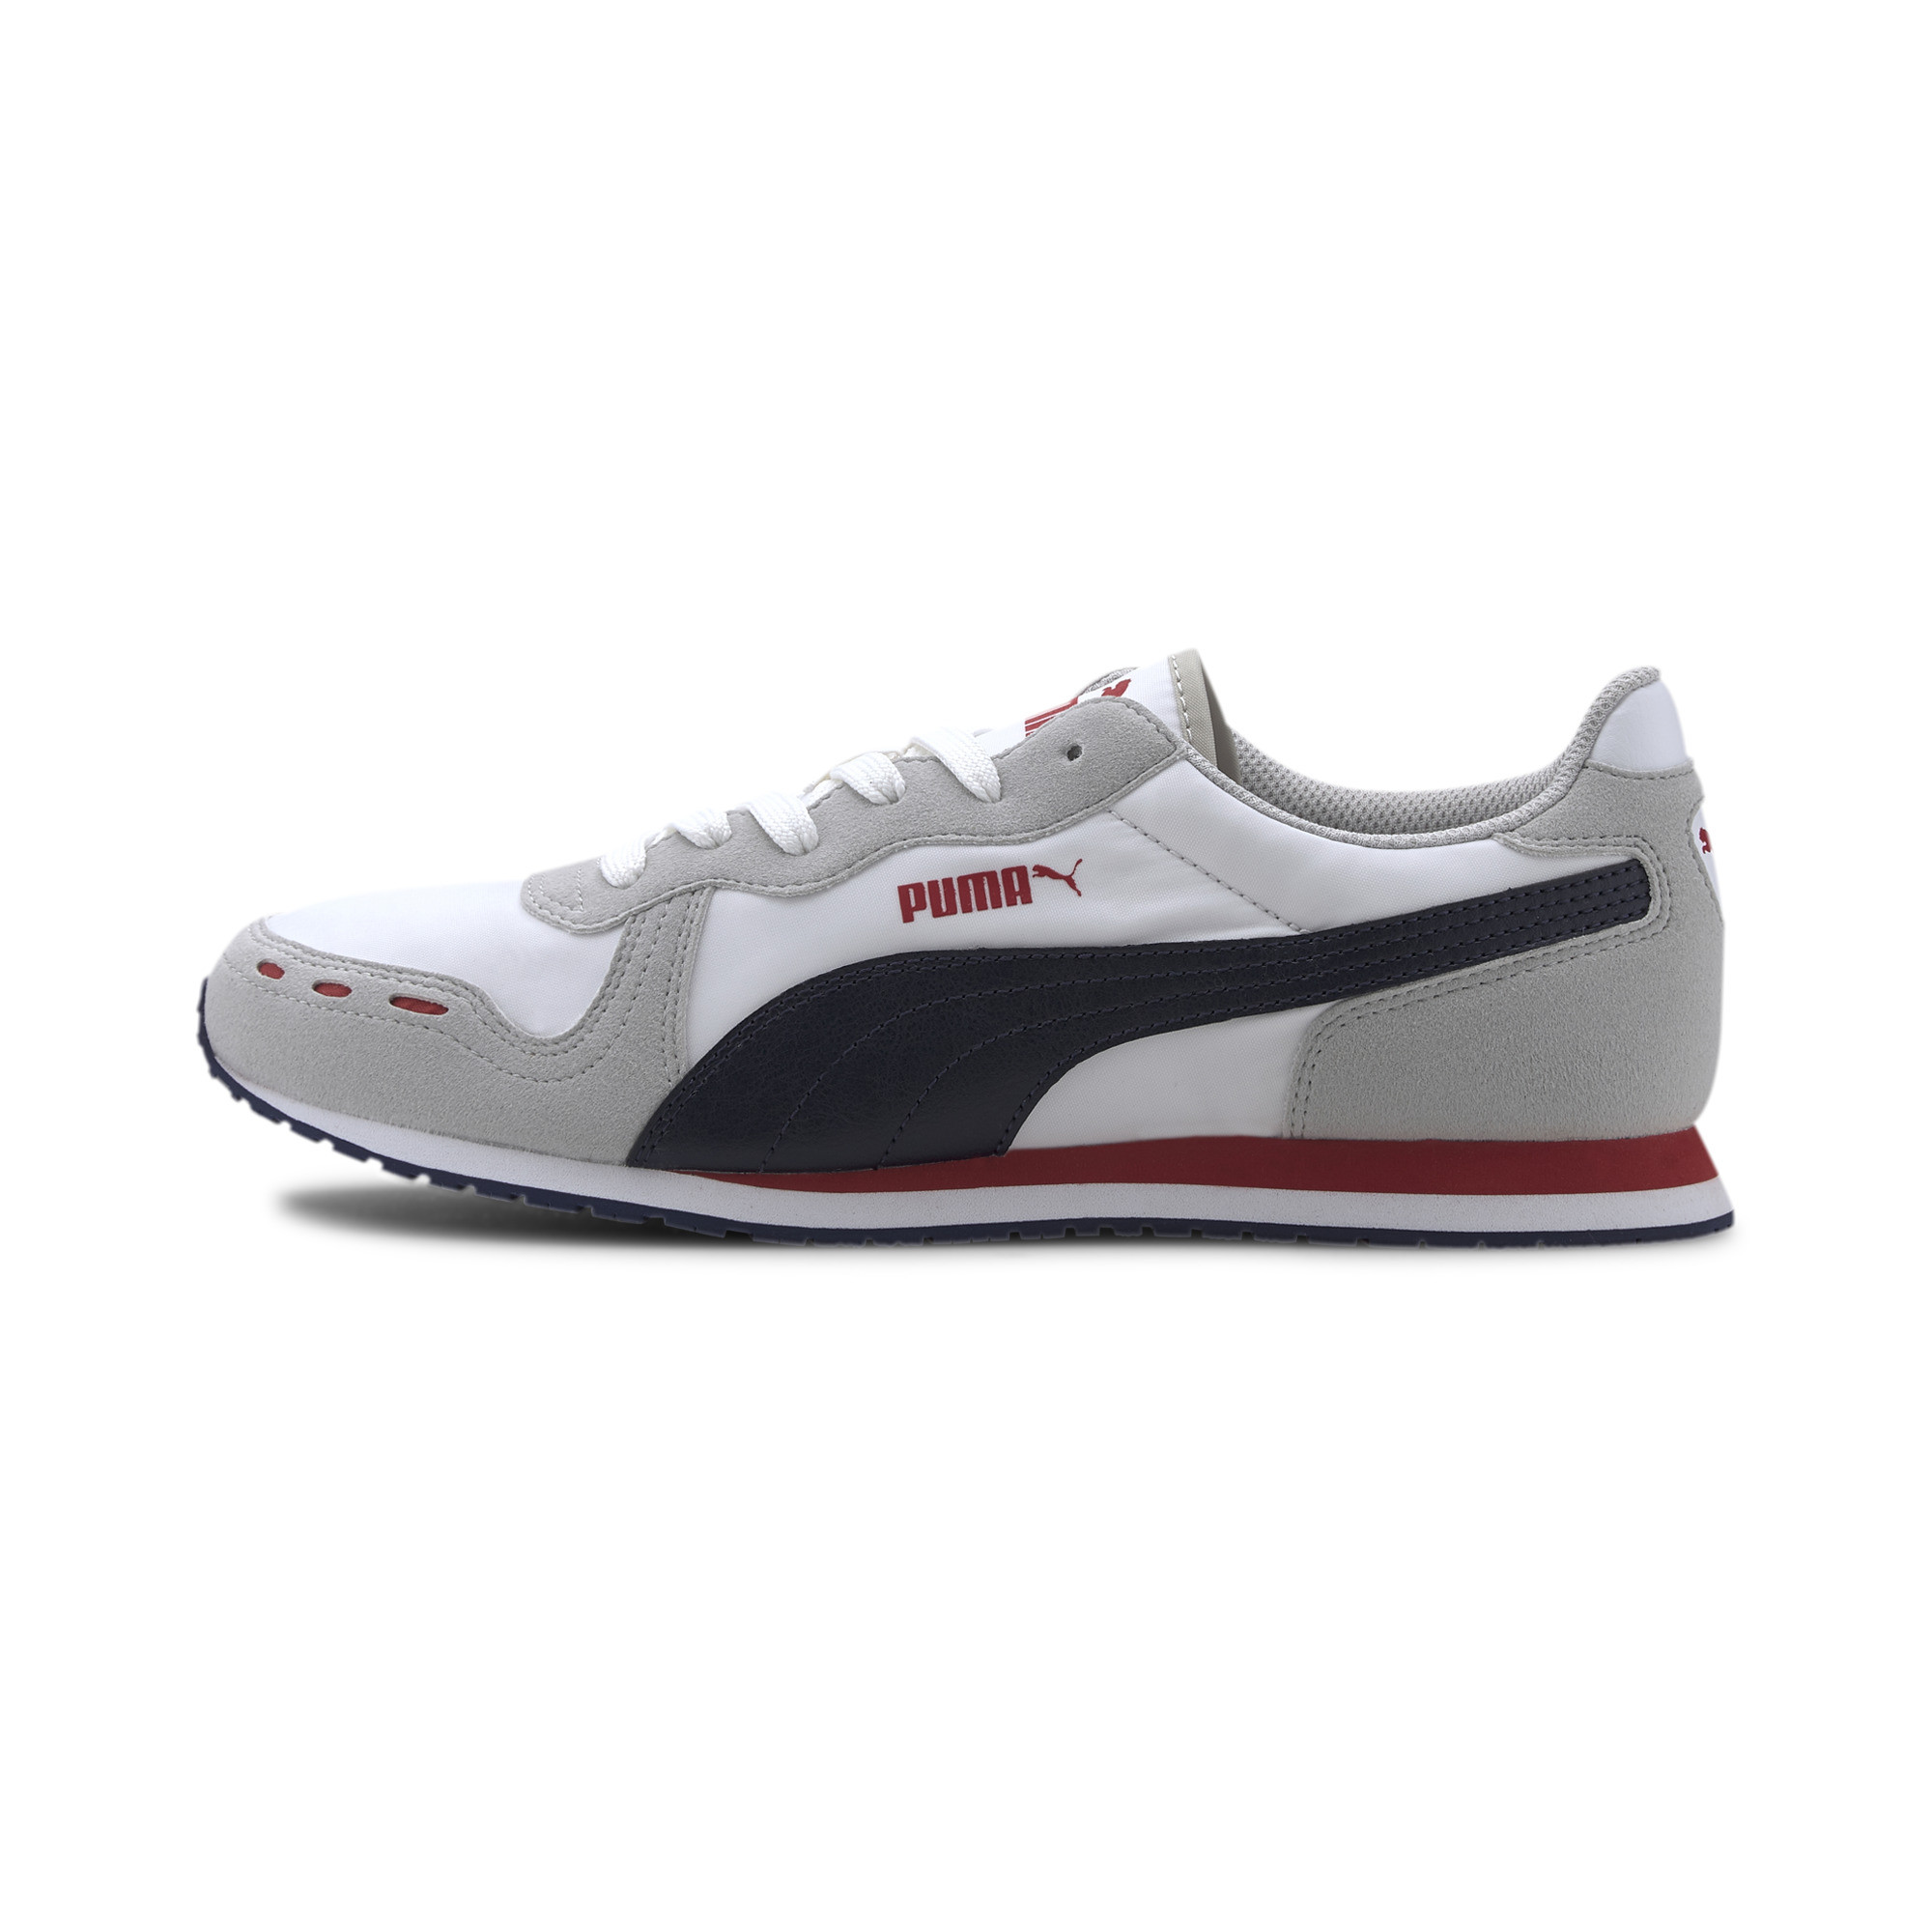 PUMA-Men-039-s-Cabana-Run-Sneakers thumbnail 4